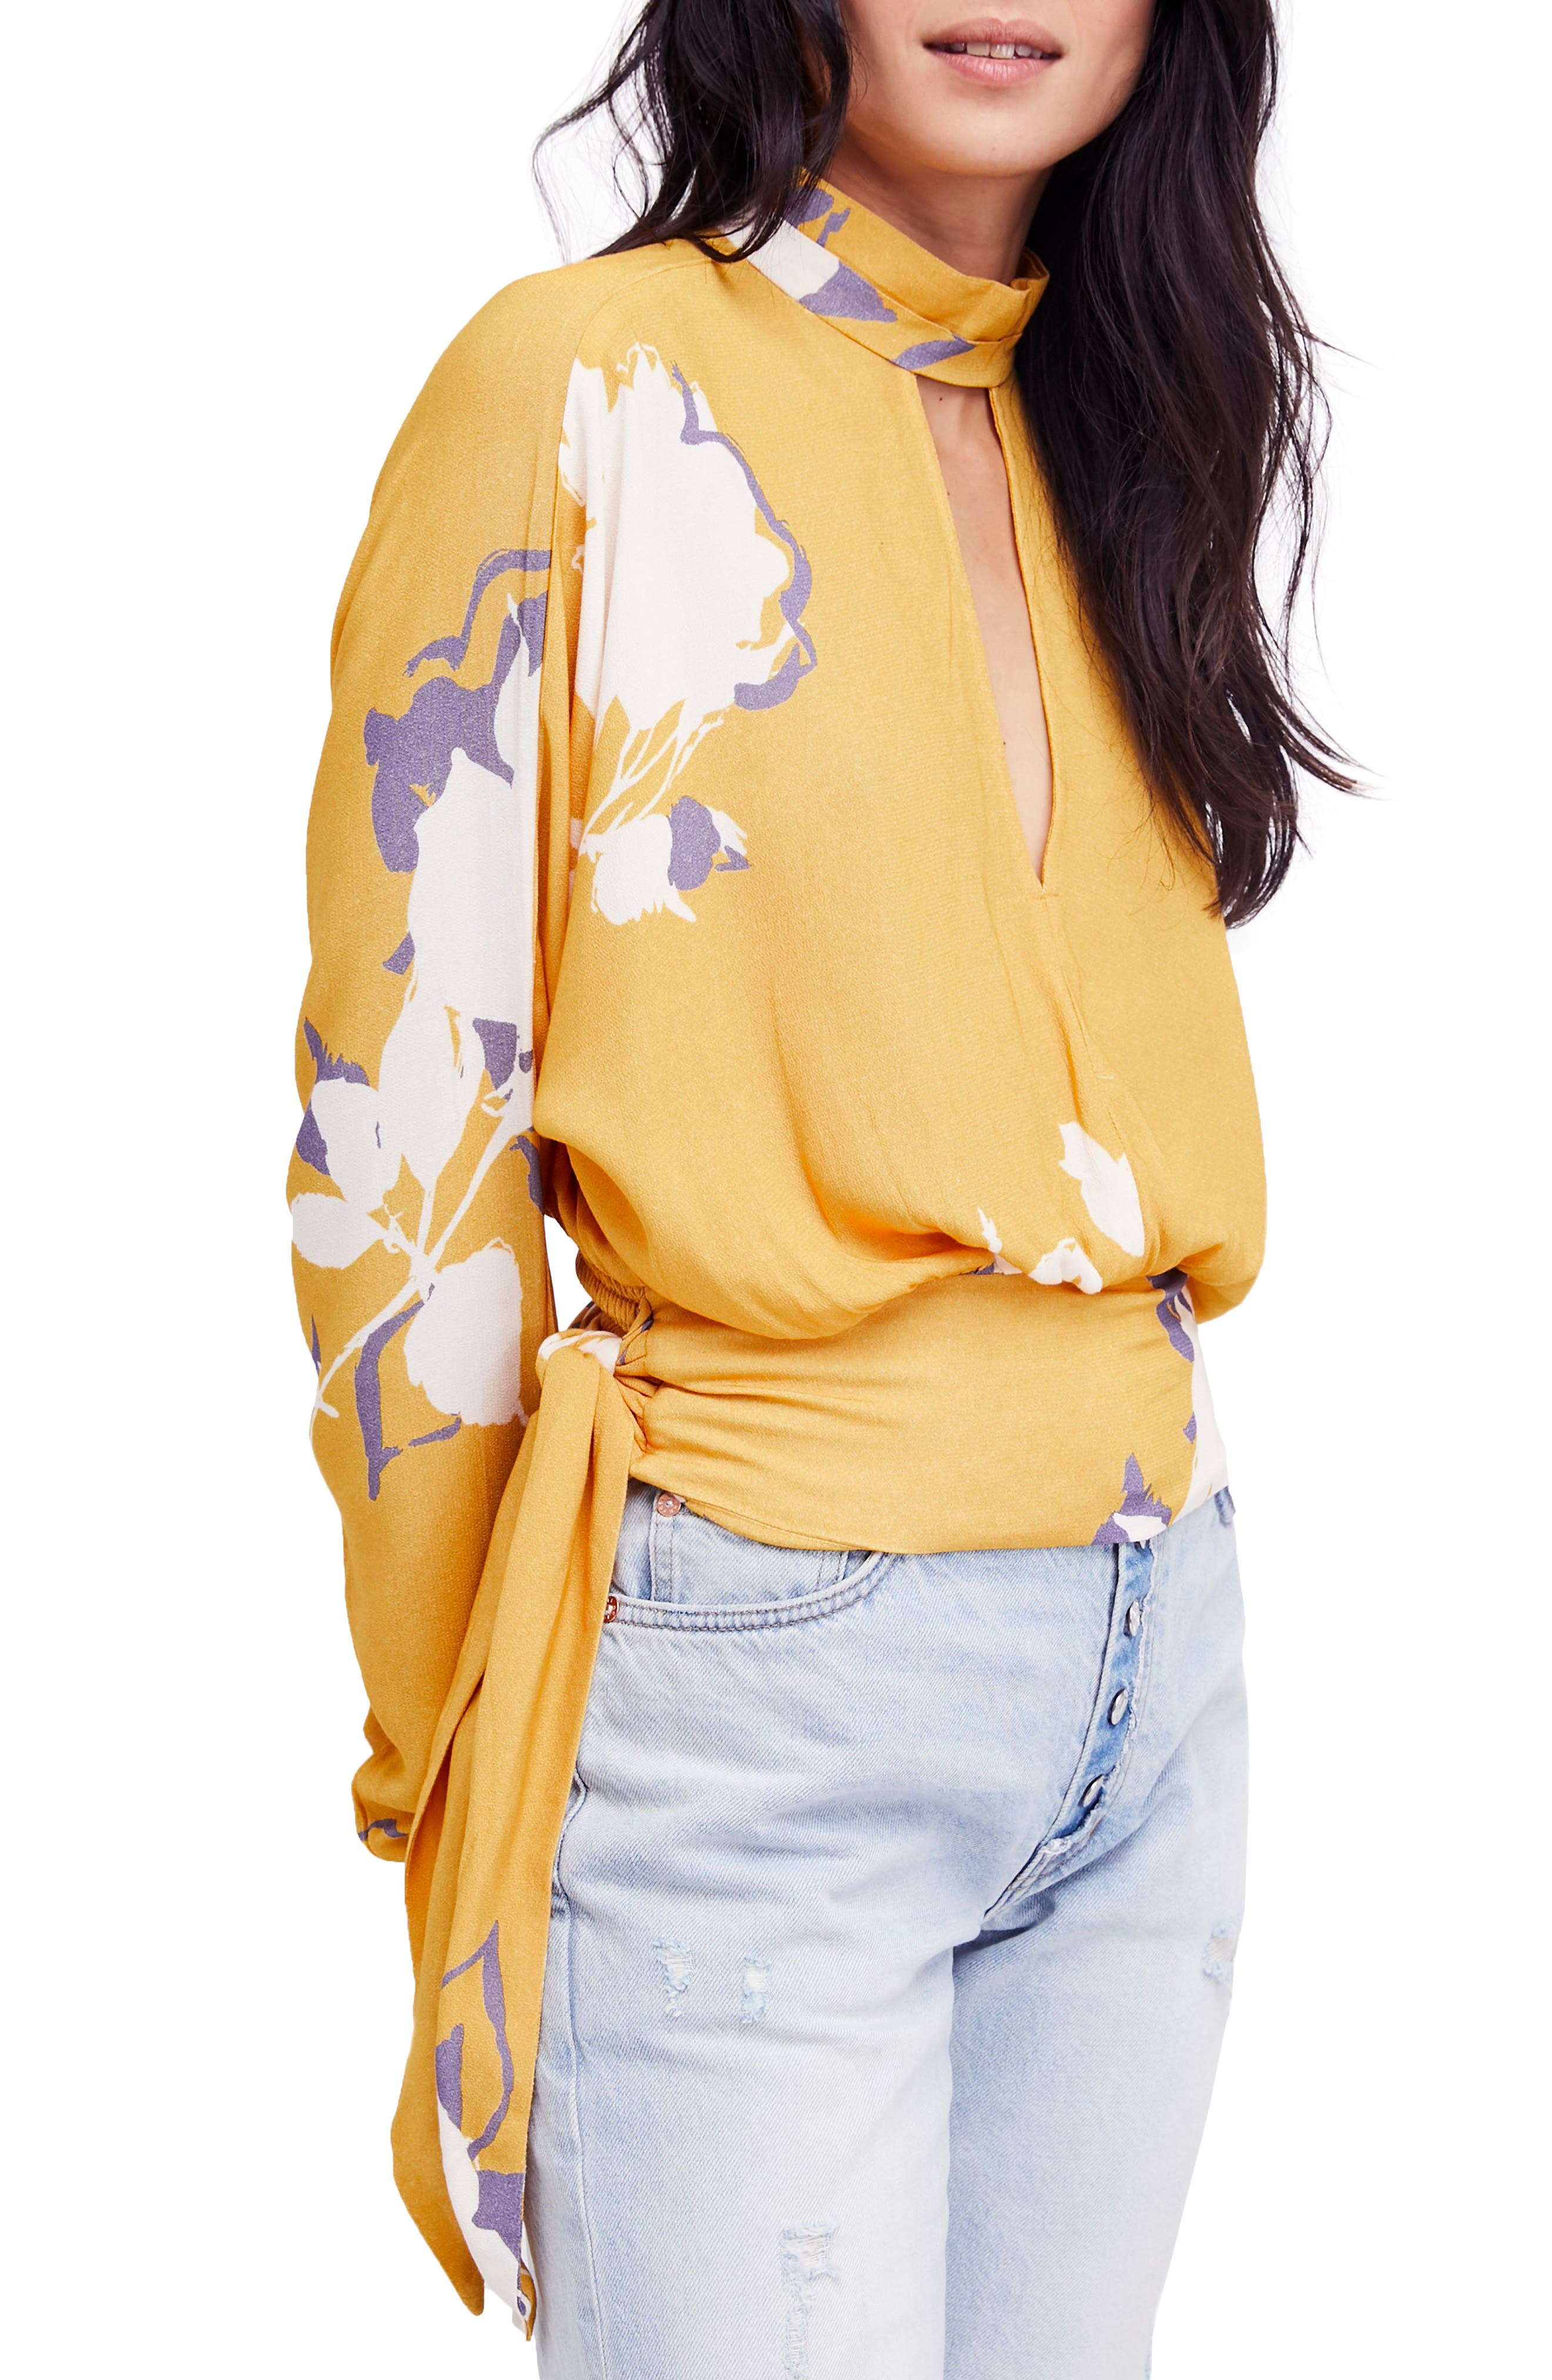 Say You Love Me Blouse,                         Main,                         color, 700